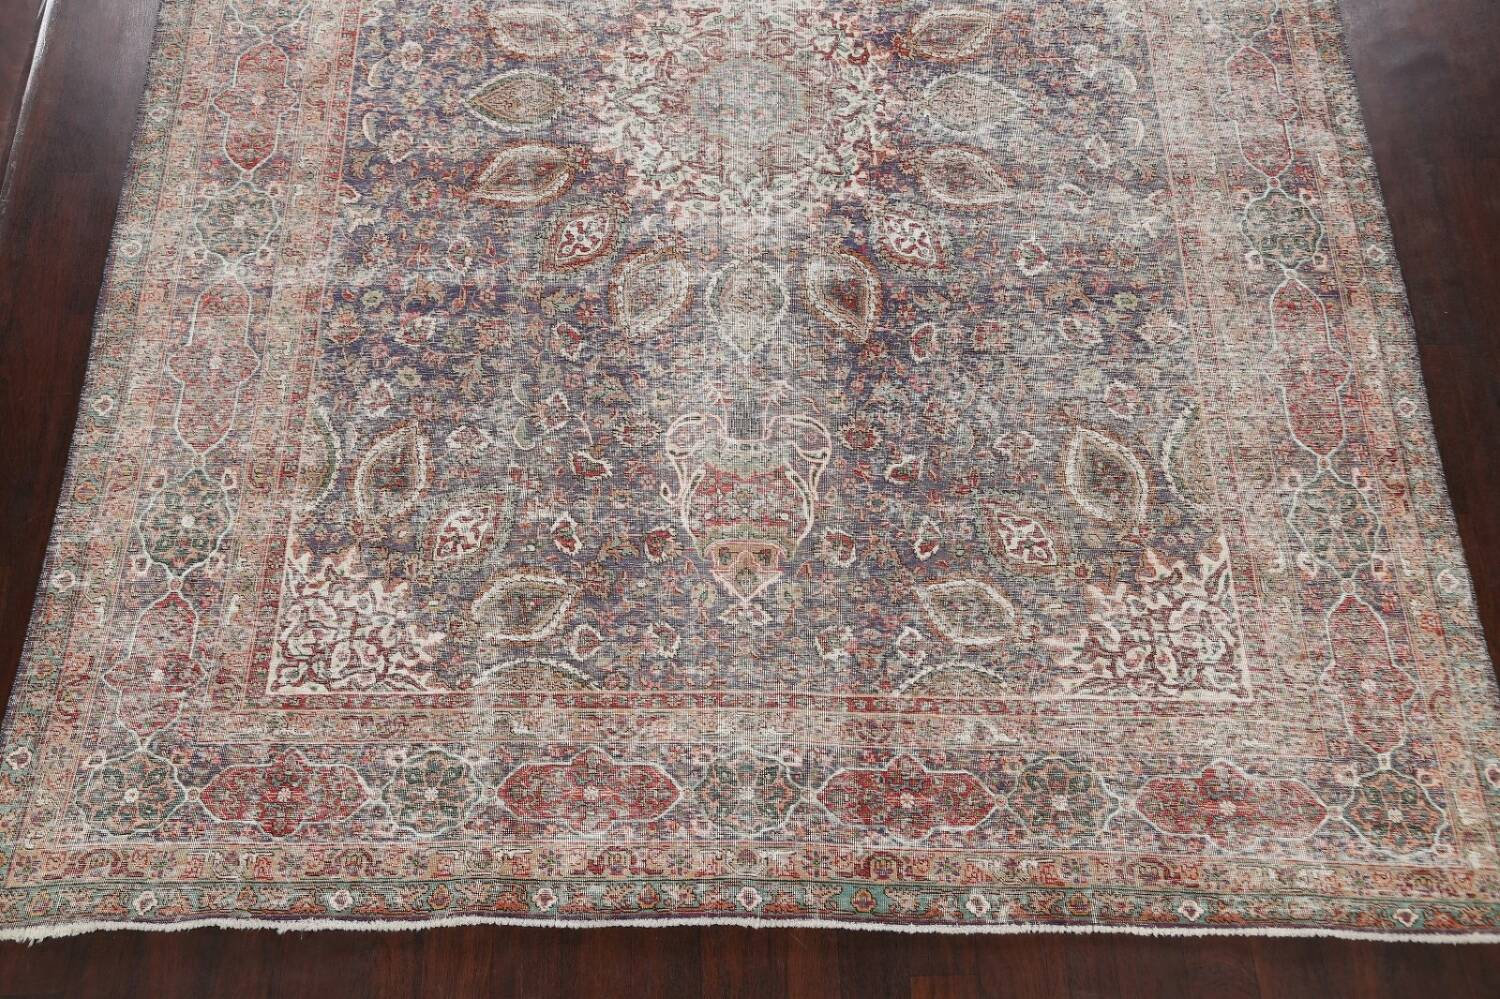 Antique Distressed Floral Tabriz Persian Area Rug 10x13 image 8